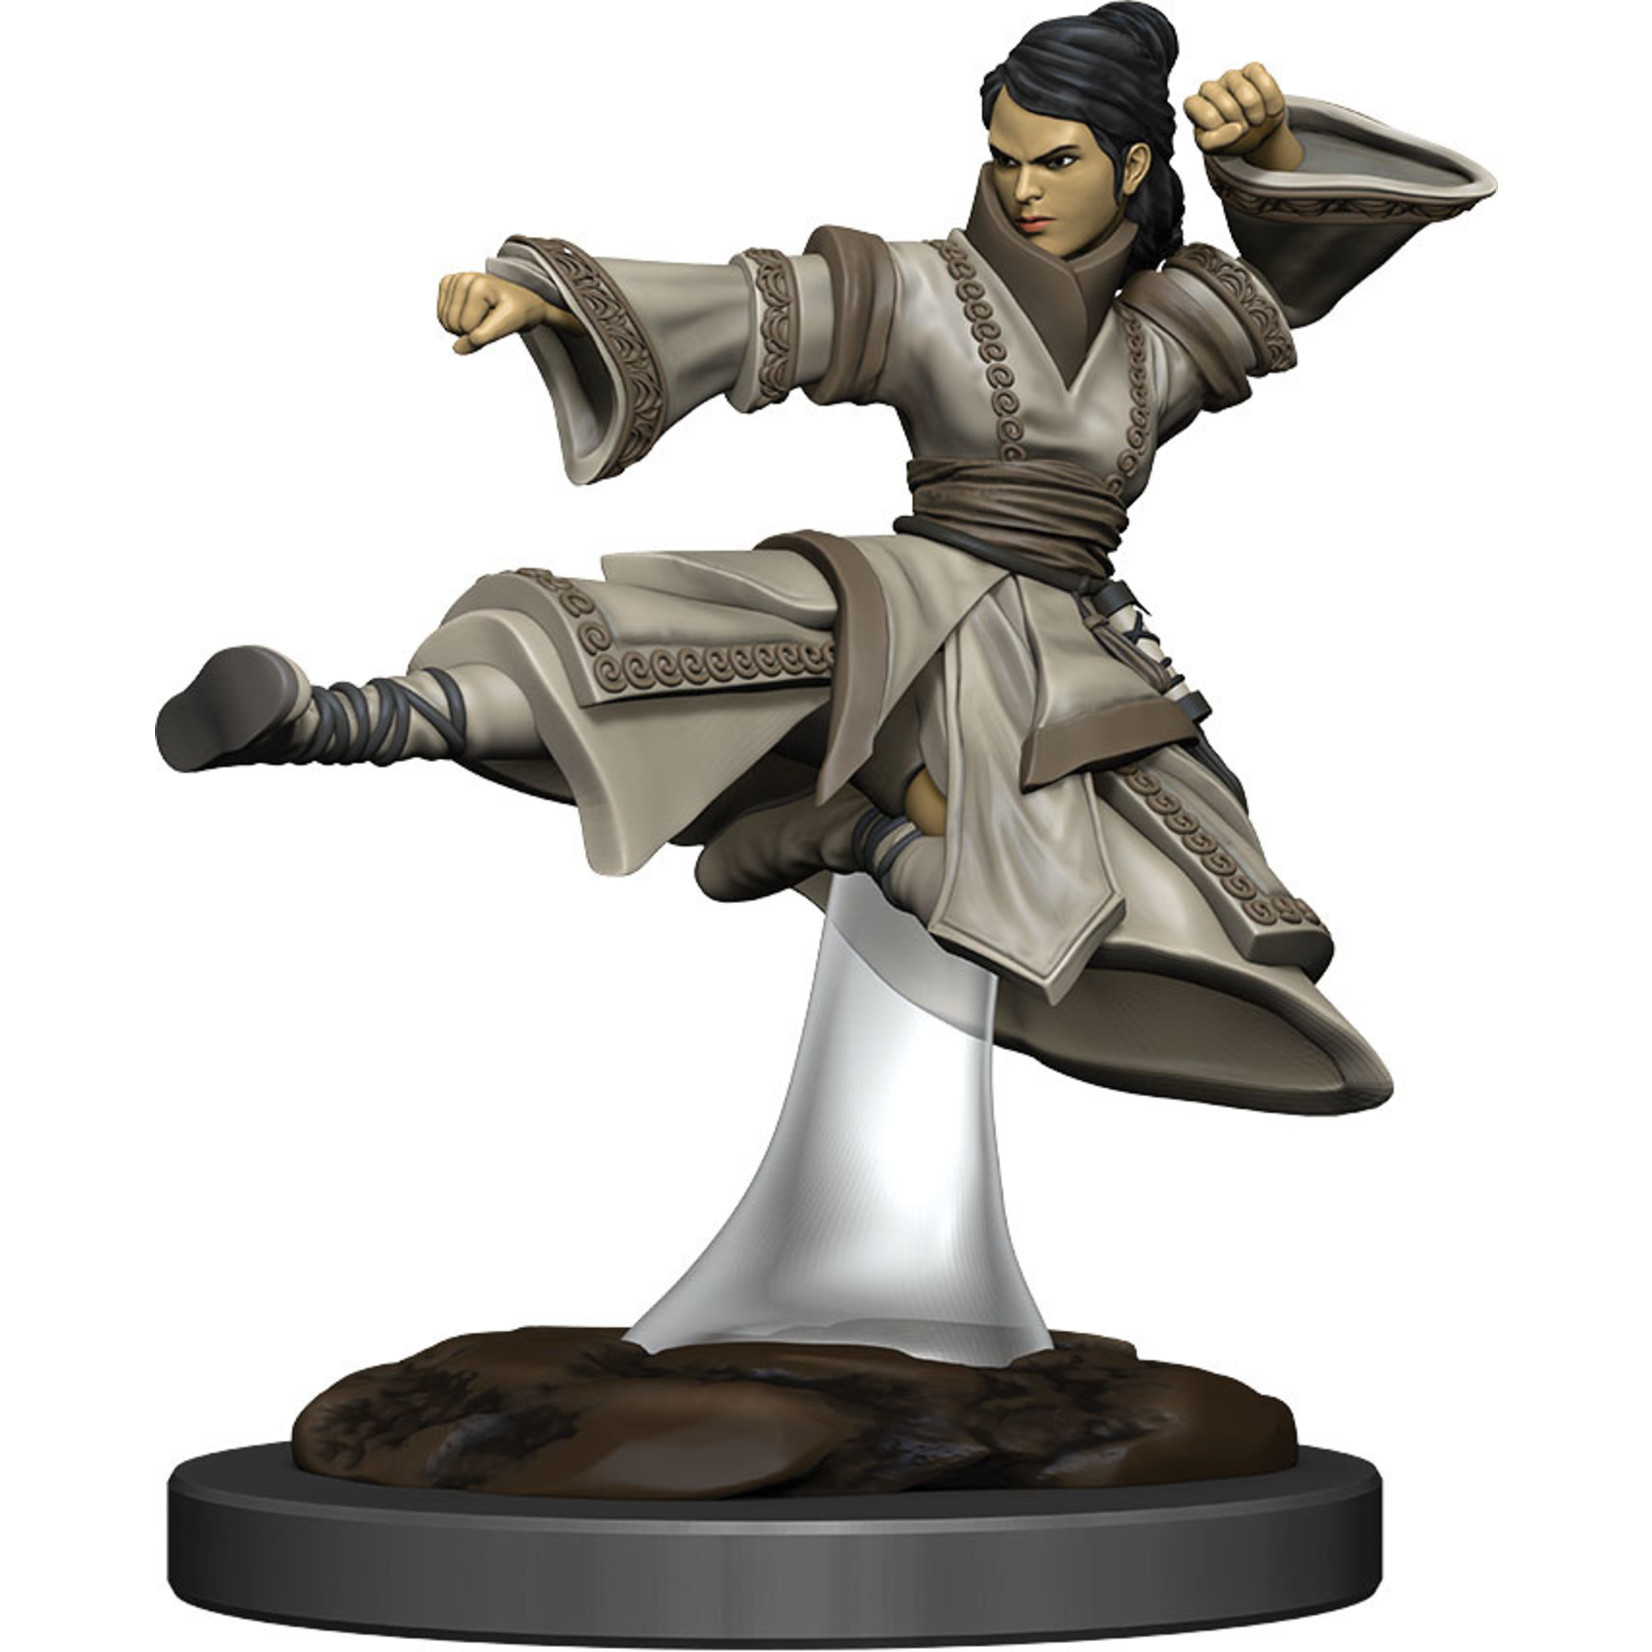 Dungeons & Dragons Fantasy Miniatures: Icons of the Realms Premium Figures W6 Human Monk Female